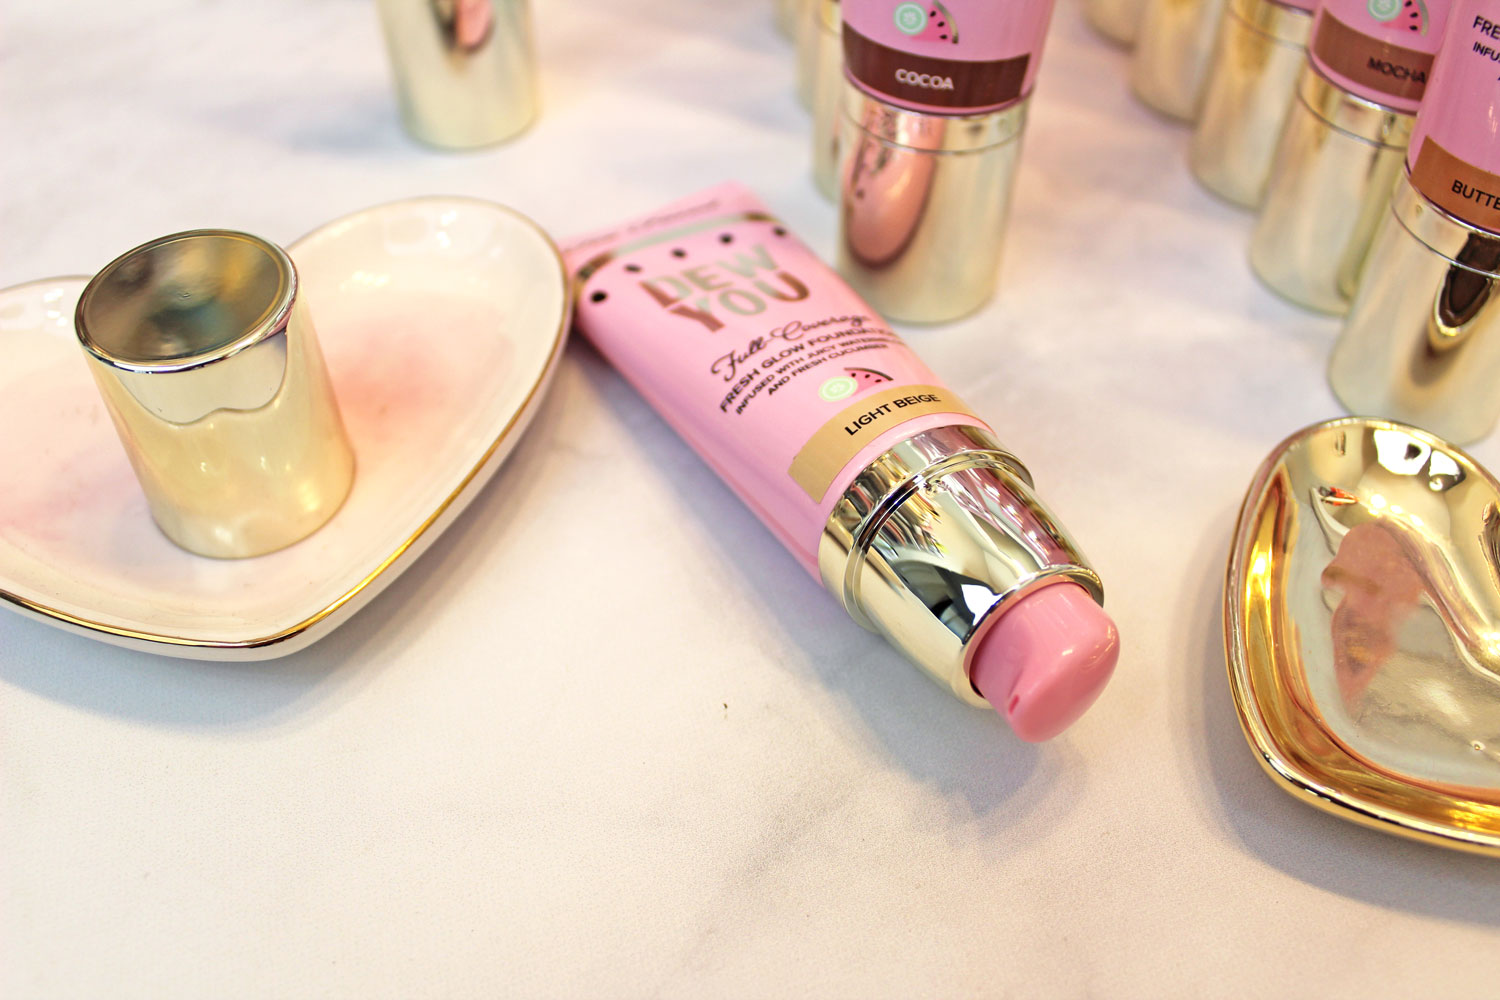 1-Too-Face-Dew-You-foundation-review-my-beauty-bunny5